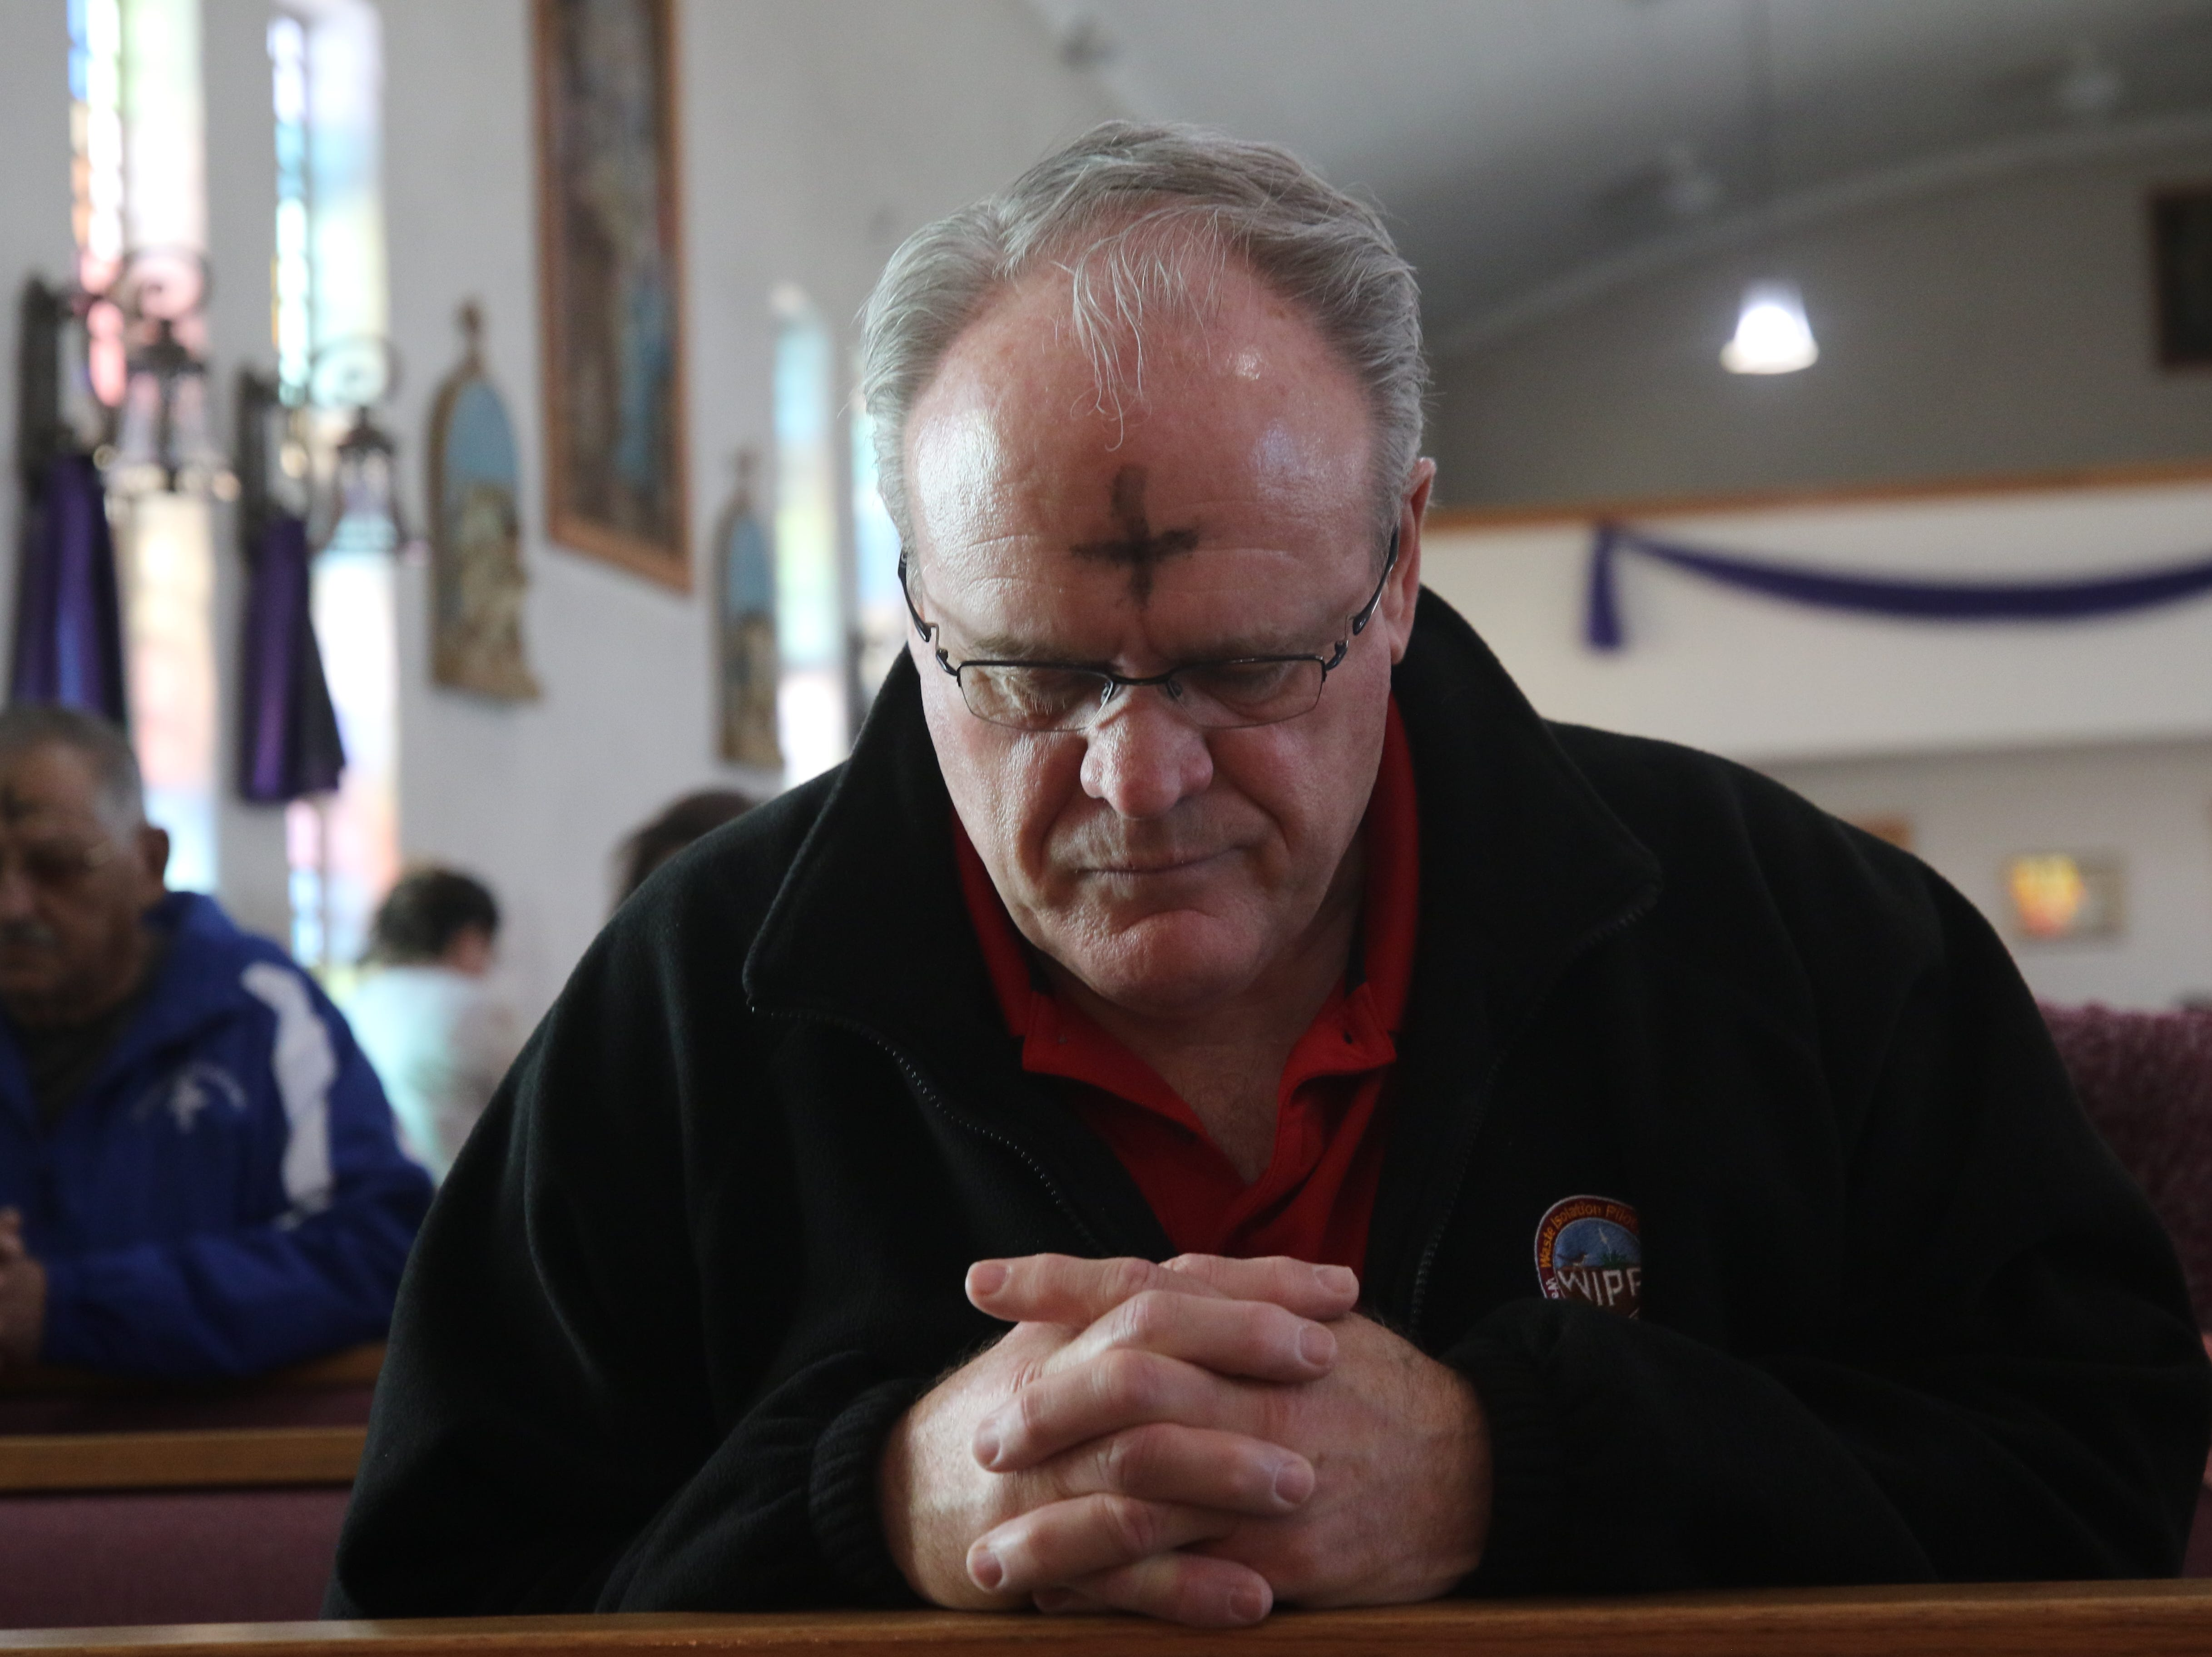 After getting their ashes, attendees engage in prayer at an Ash Wednesday mass, March 6, 2019 at St Edward Catholic Church.